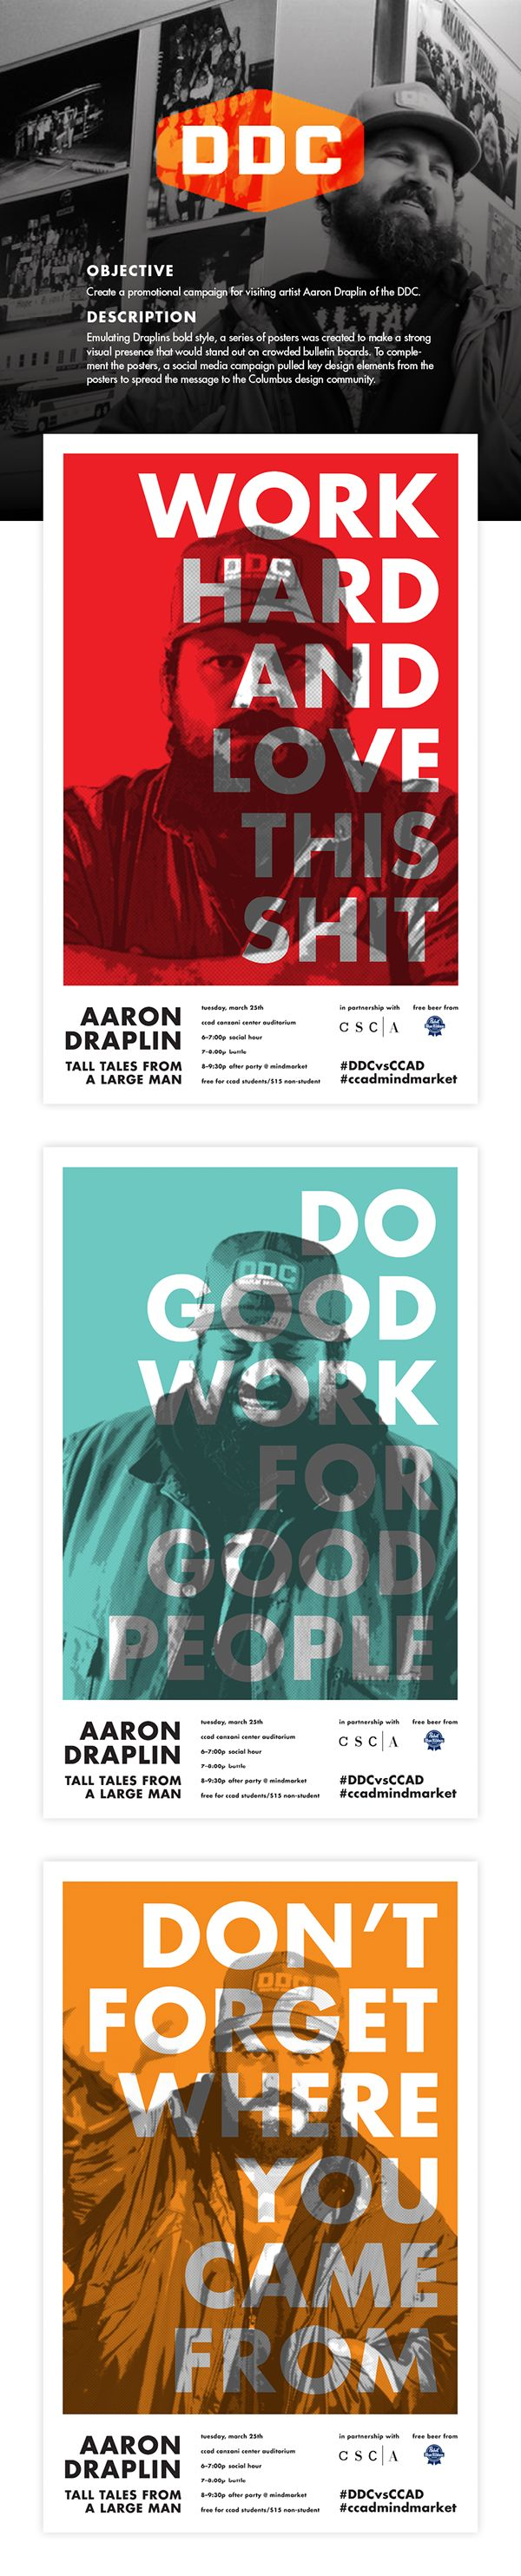 Poster design company - 2014objectivecreate A Series Of Promotions For Visiting Artist Aaron Draplin Of The Draplin Design Company